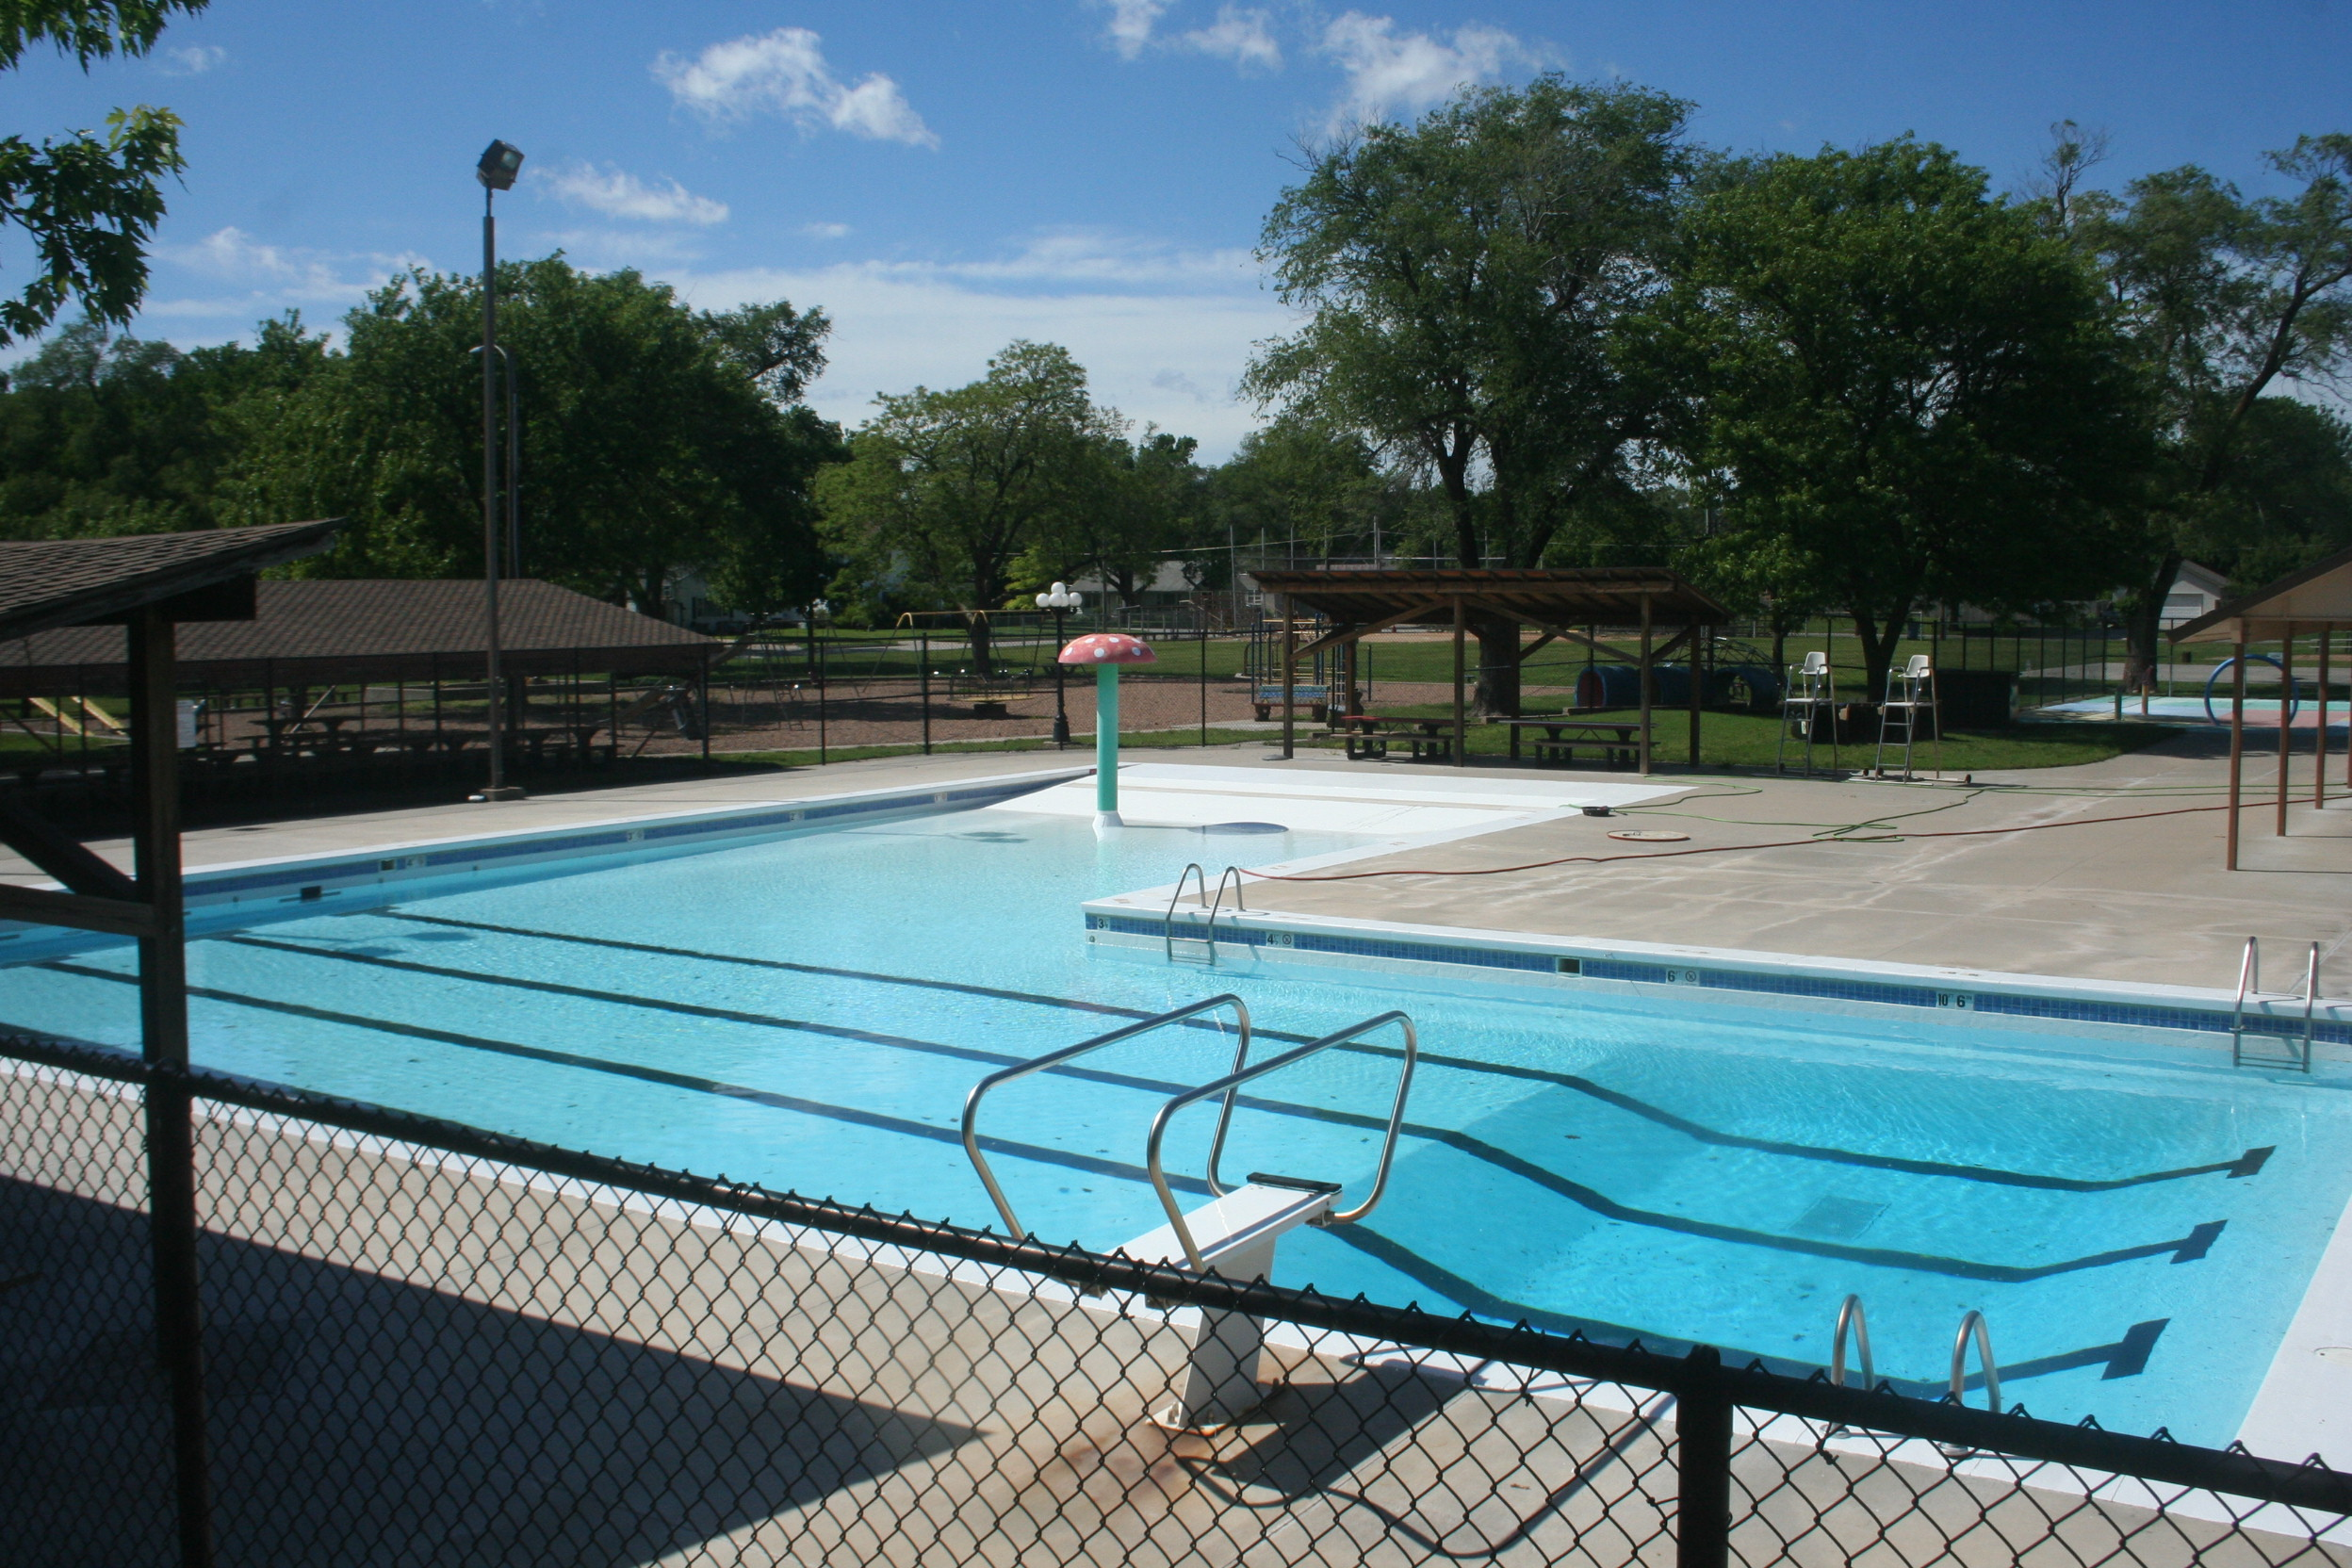 Sedgwick city council pushes opening of swimming pool back again